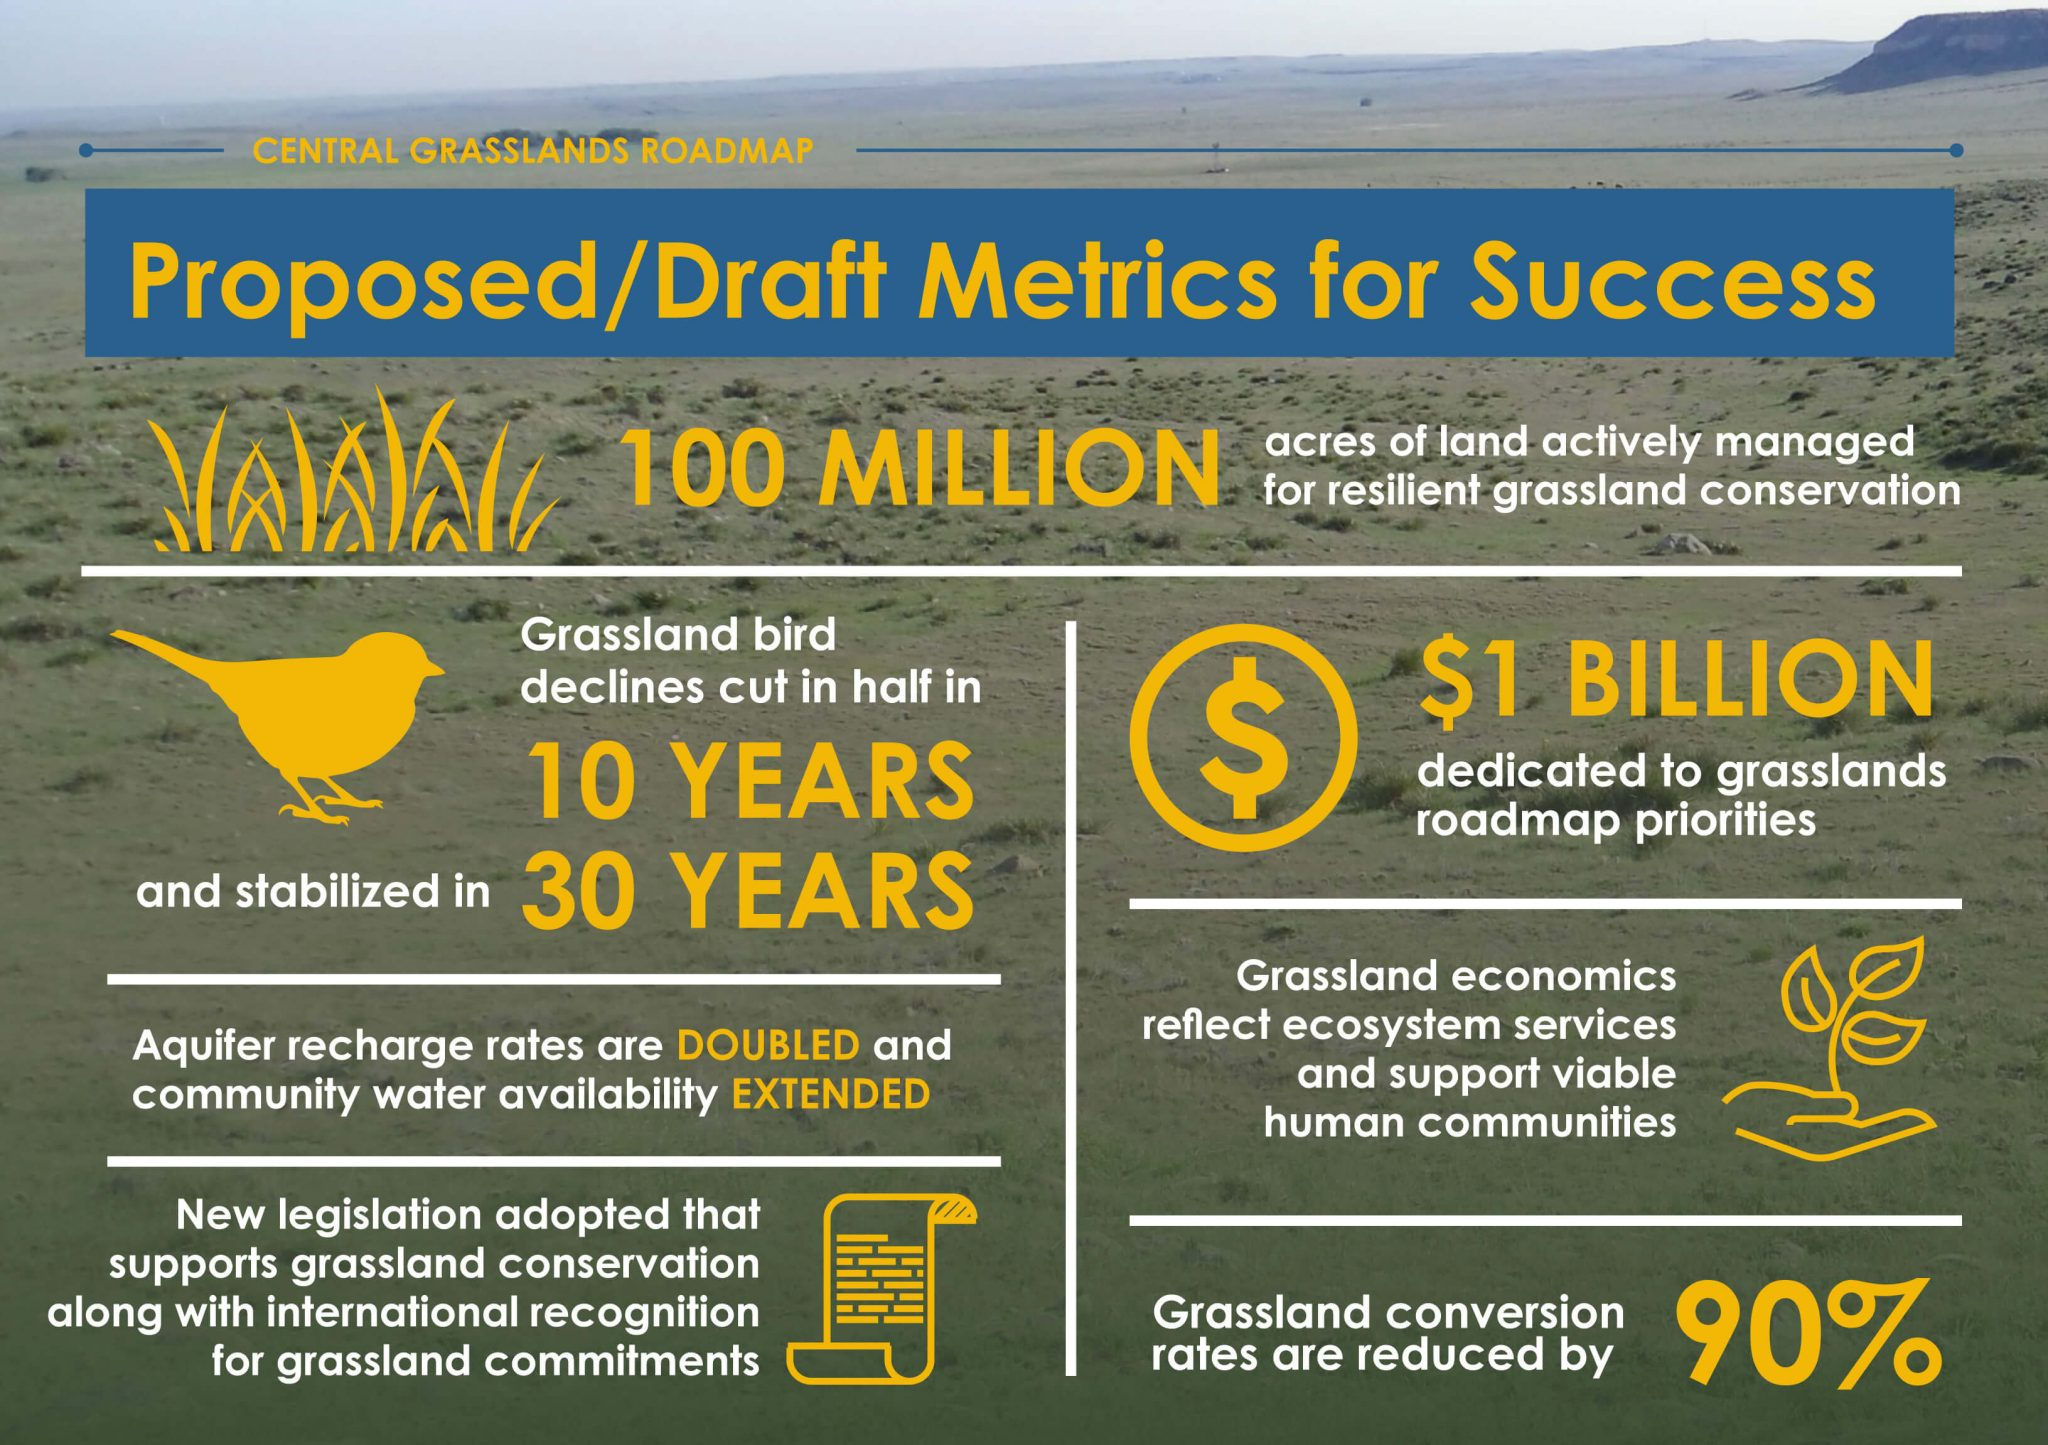 The Roadmap describes and inspiring and ambitious set of metrics for success!